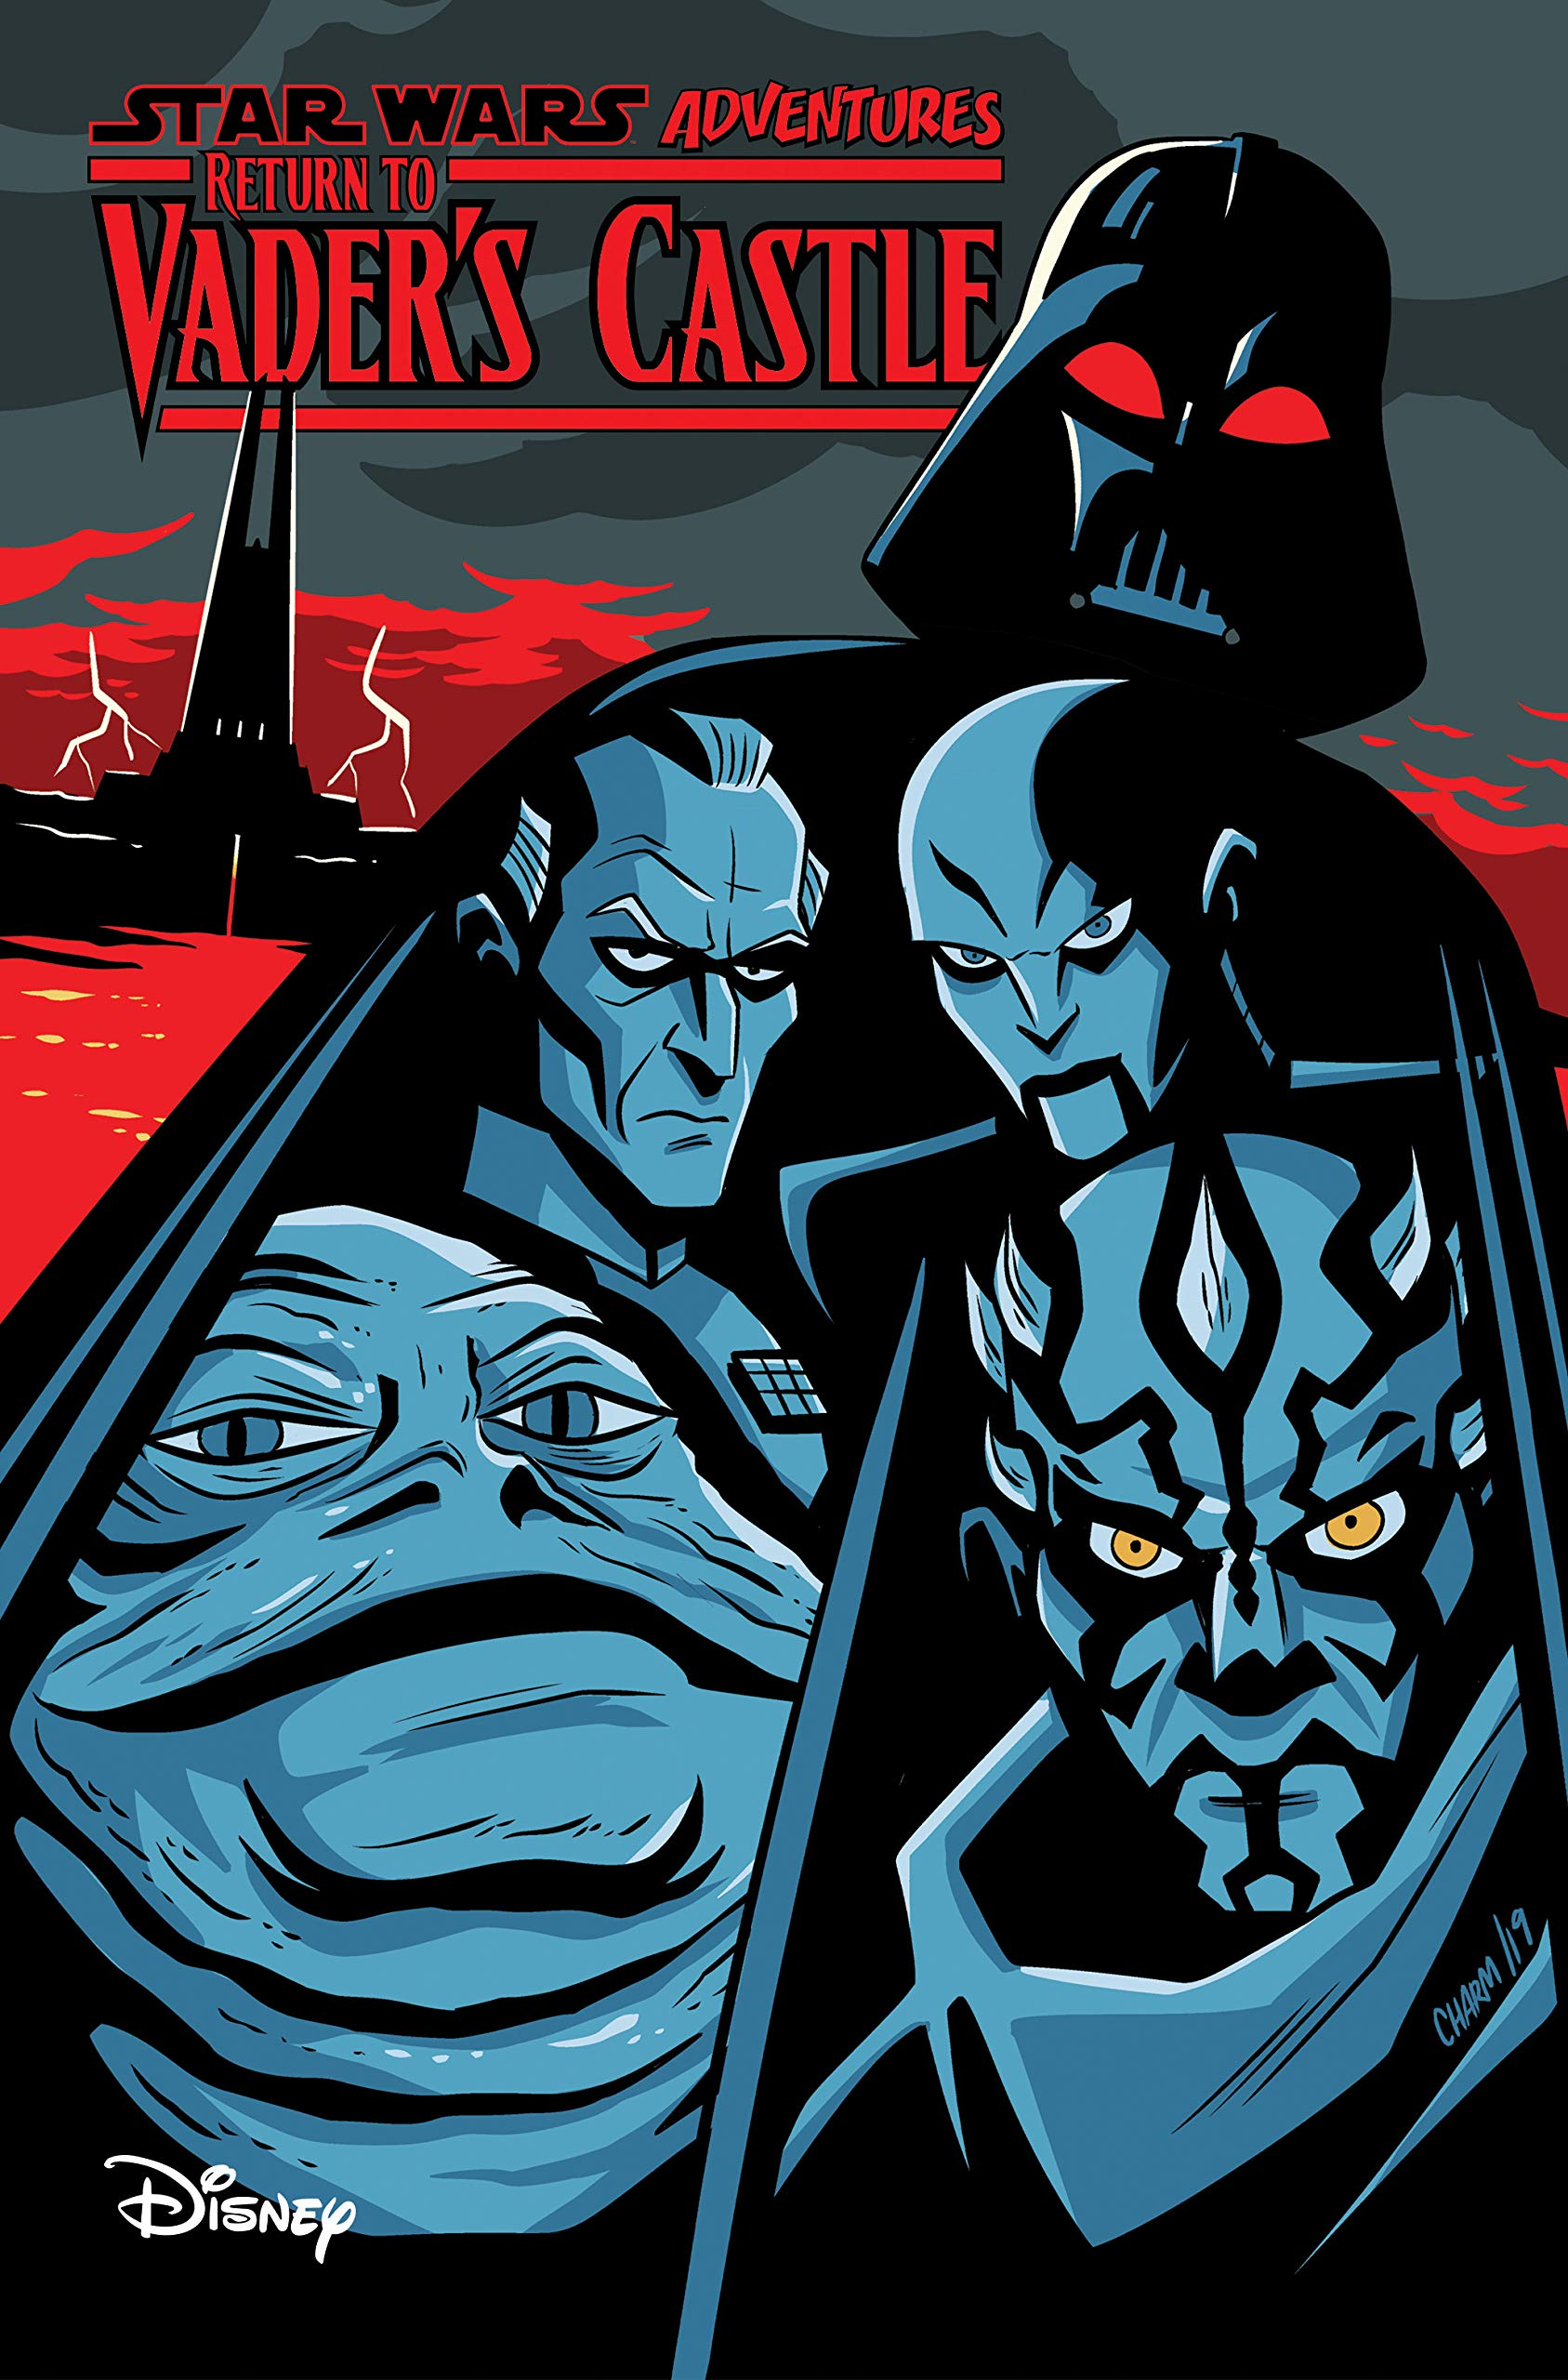 Adventures Return to Vader's Castle cover